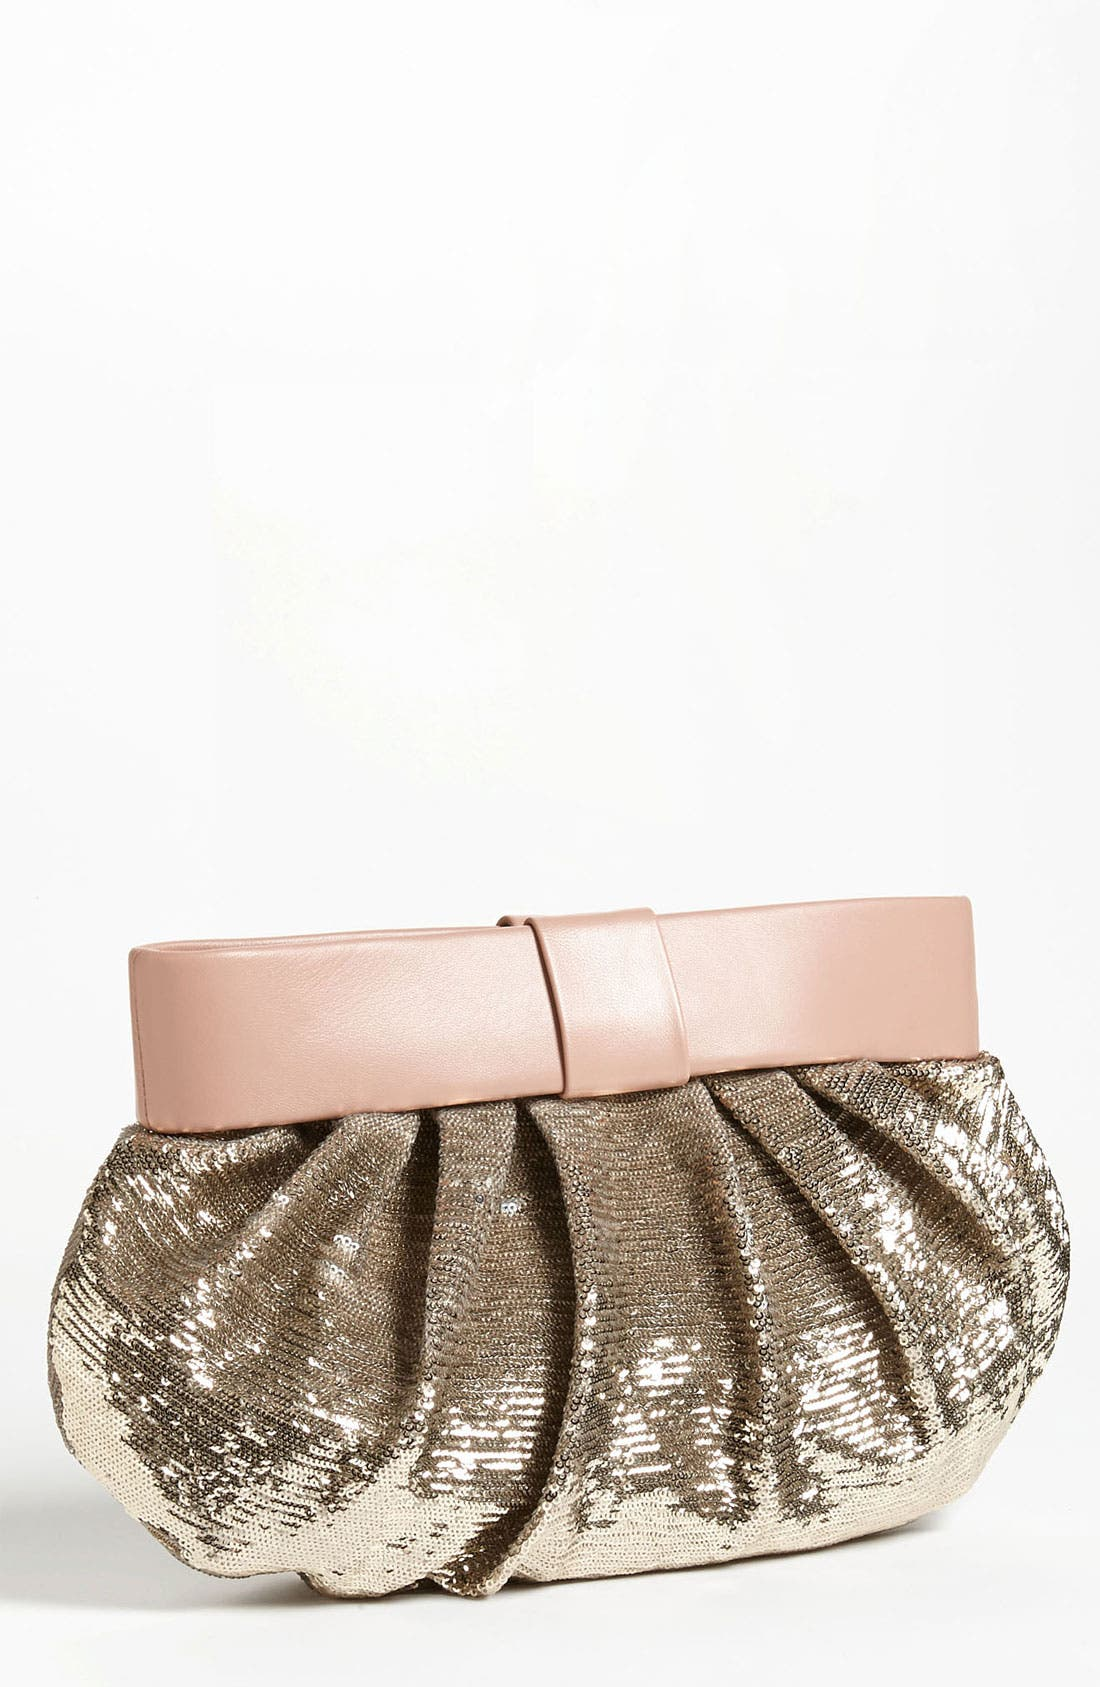 Alternate Image 1 Selected - RED Valentino 'Bow' Sequin Clutch